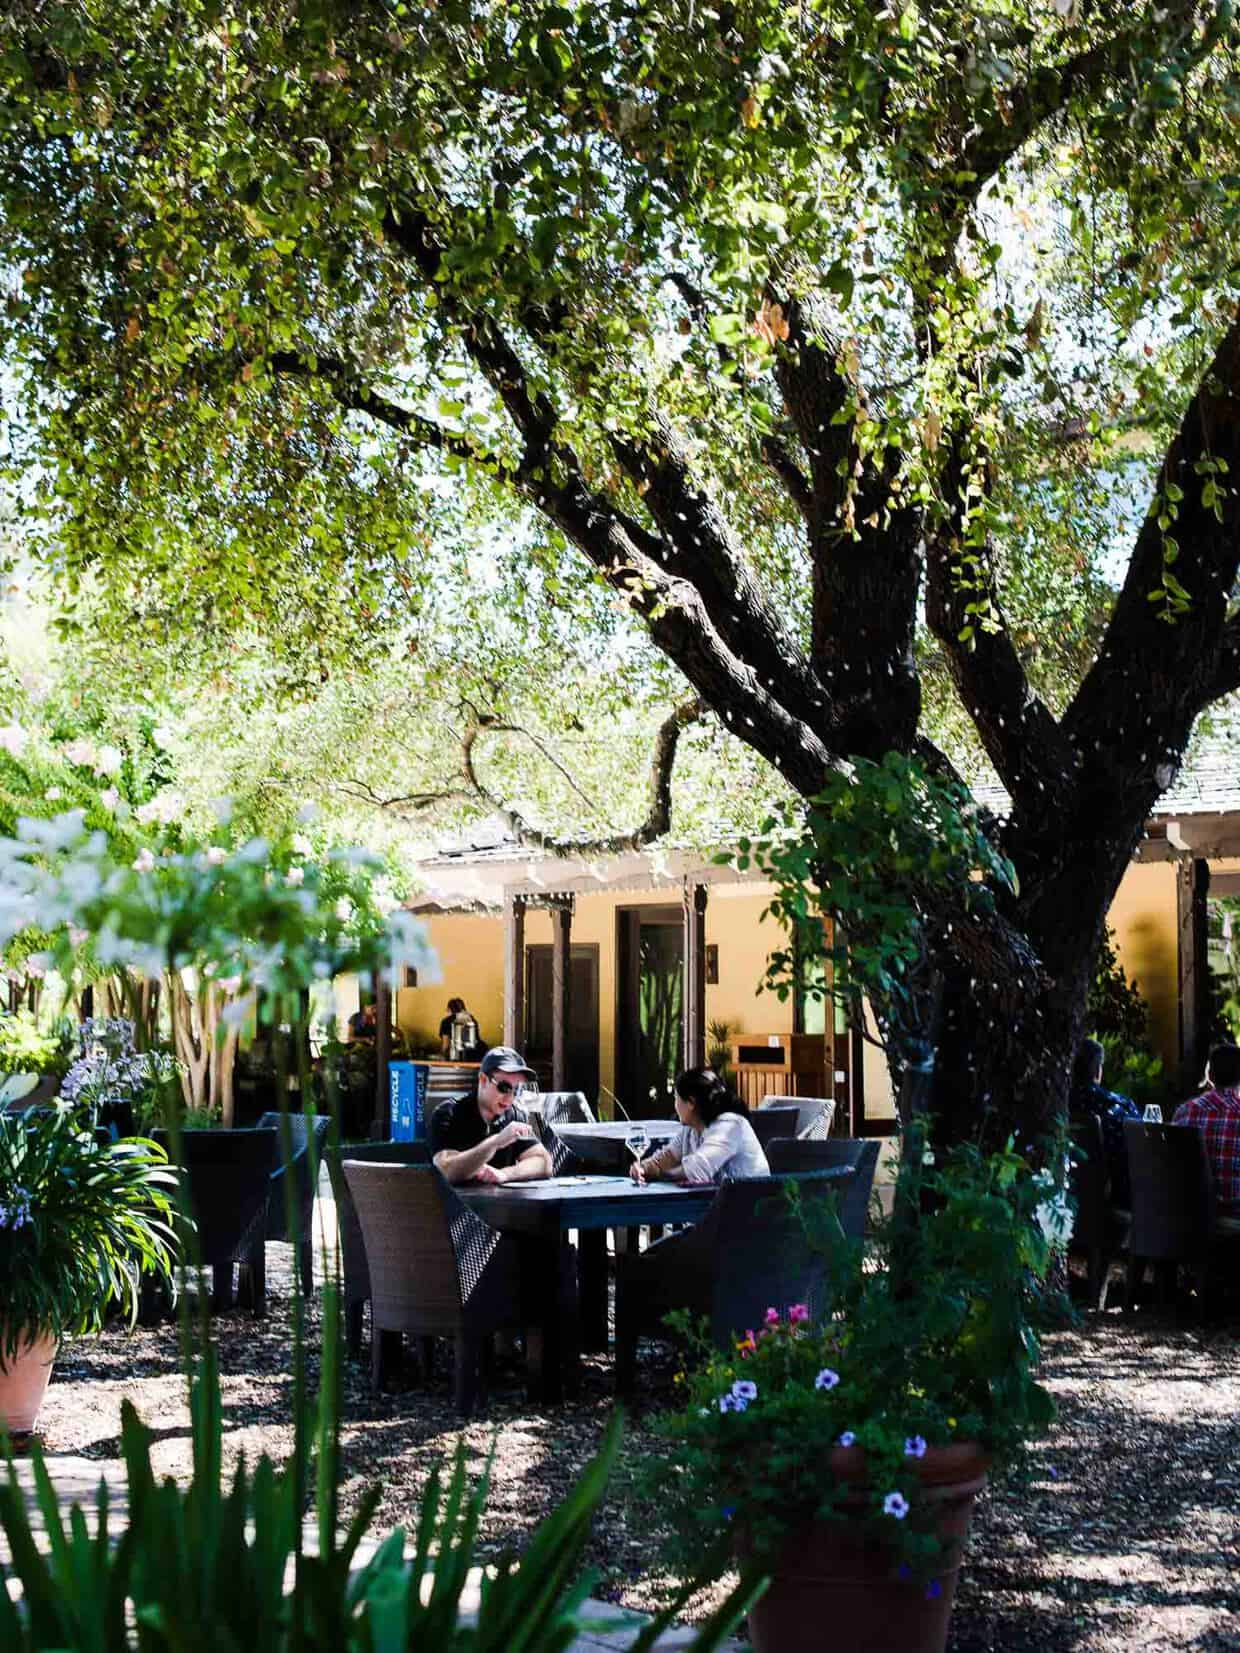 The grounds at Landmark Vineyards offer a cozy place to spend the afternoon for tasting.